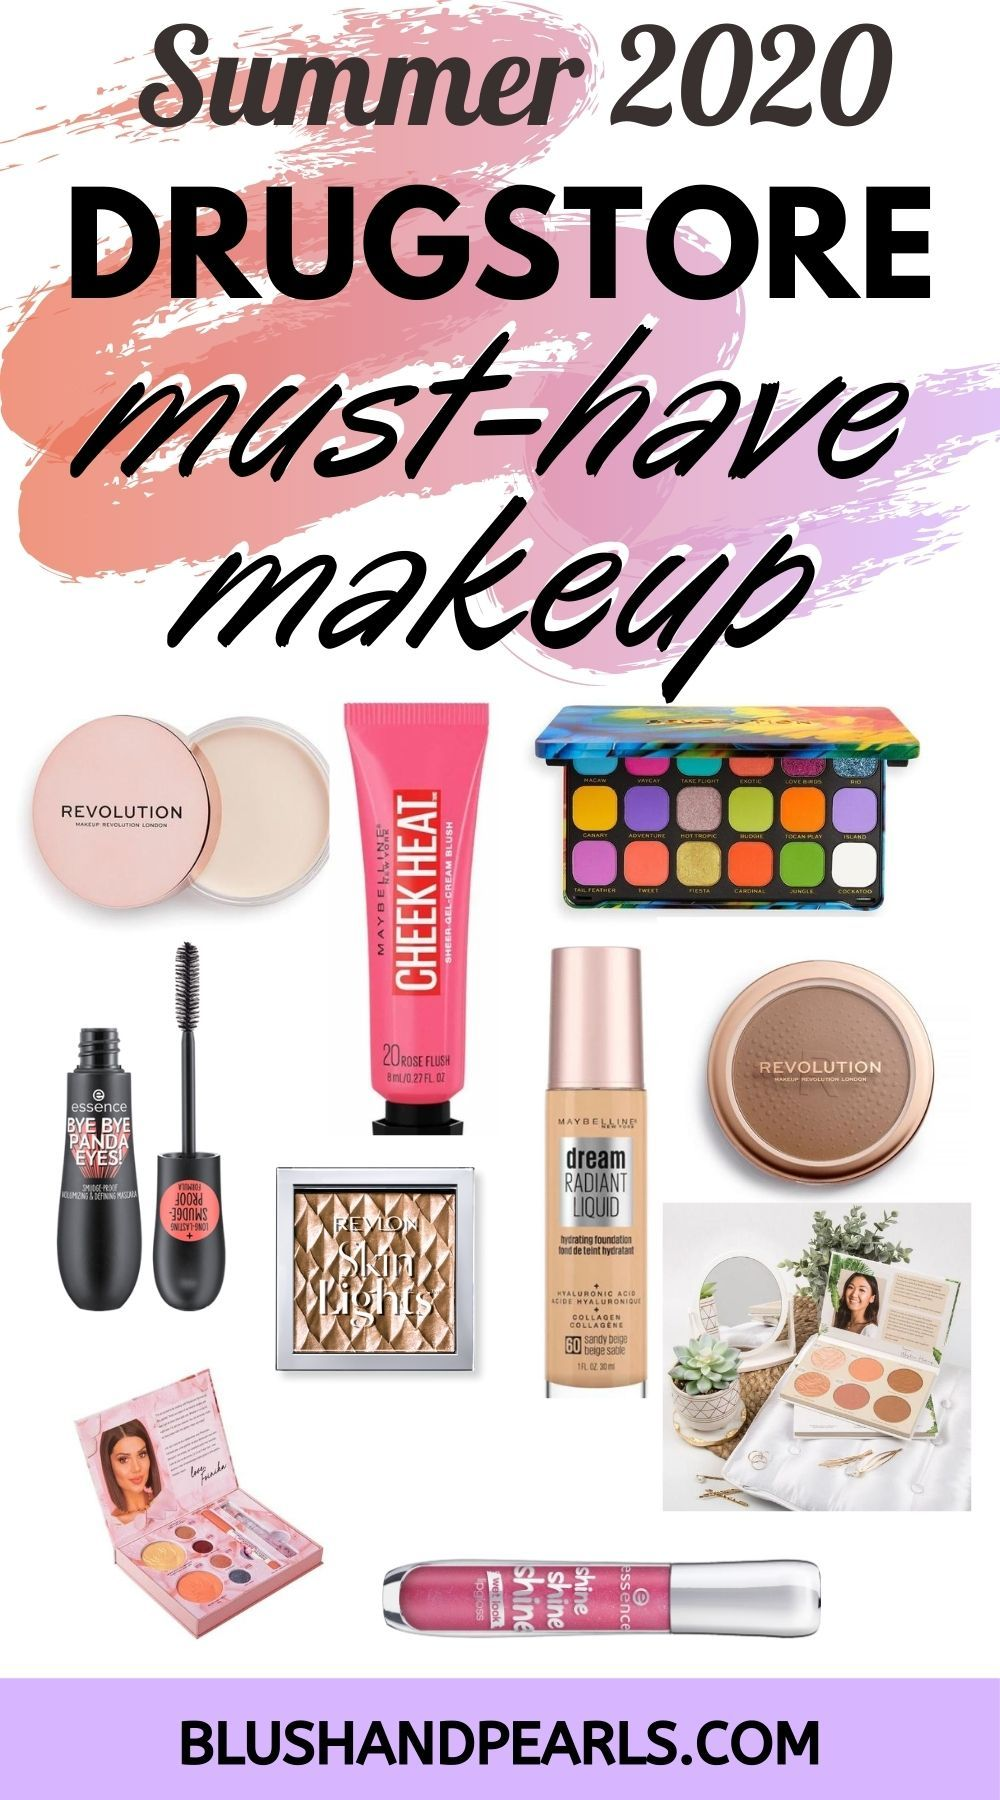 New Summer MustHave Drugstore Makeup Blush & Pearls in